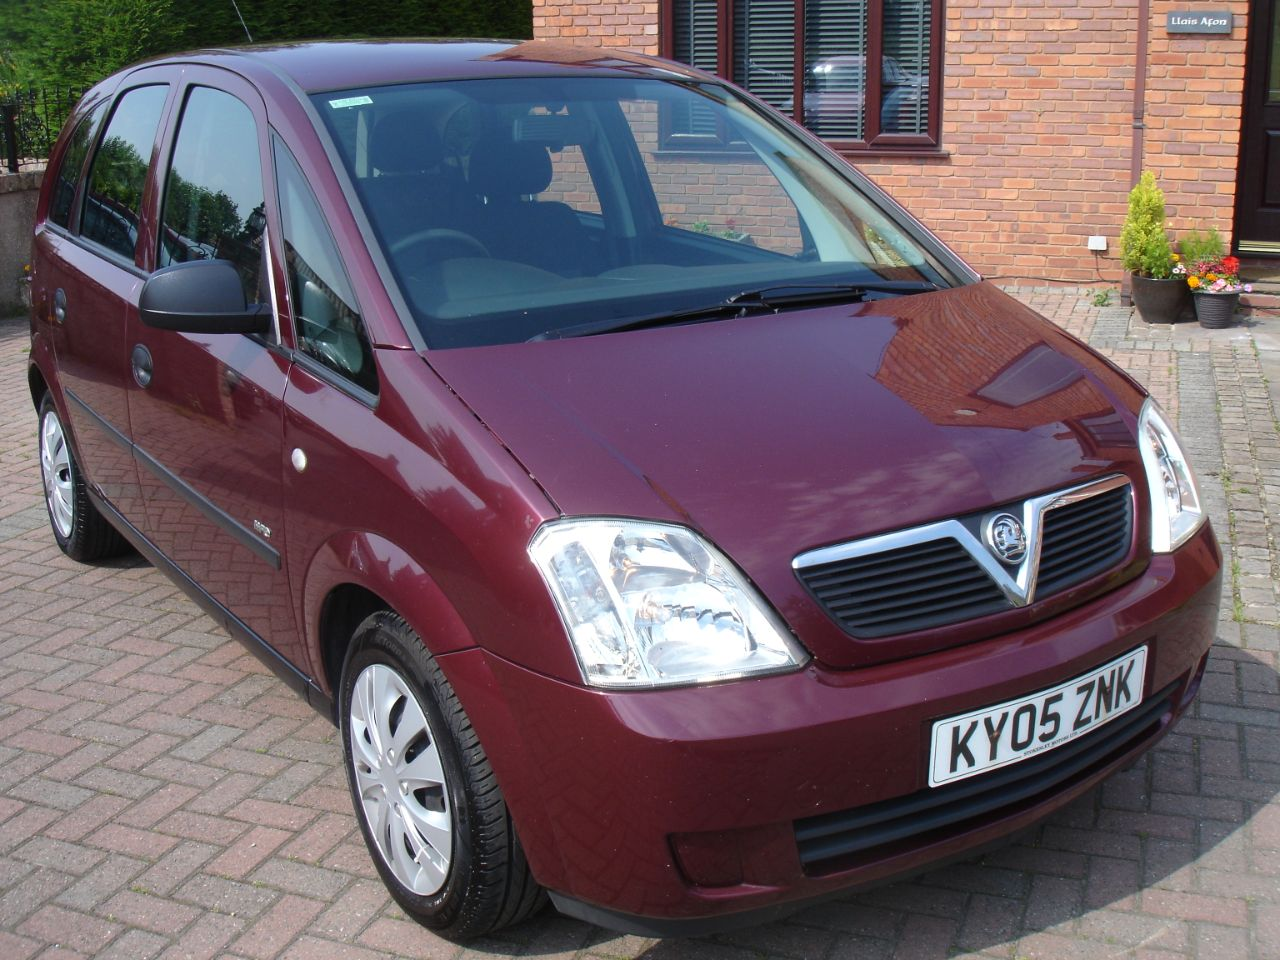 Vauxhall Meriva 1.4 16V Life 5dr MPV Petrol Rubens Red Metallic at Level Pitch Selby